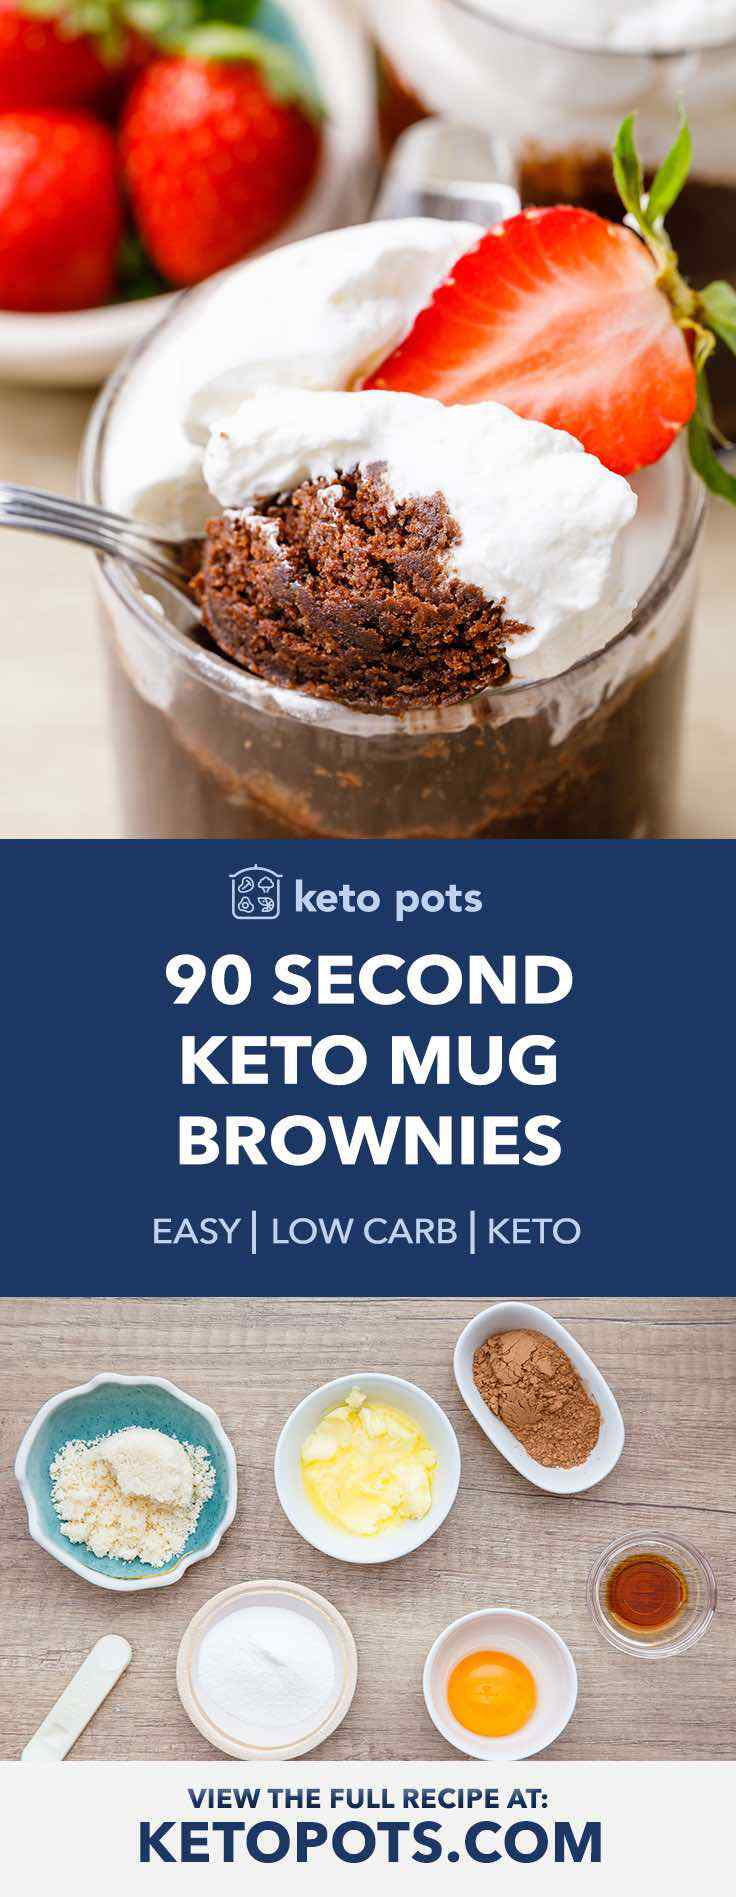 Easy 90 Second Keto Mug Brownies Keto Pots